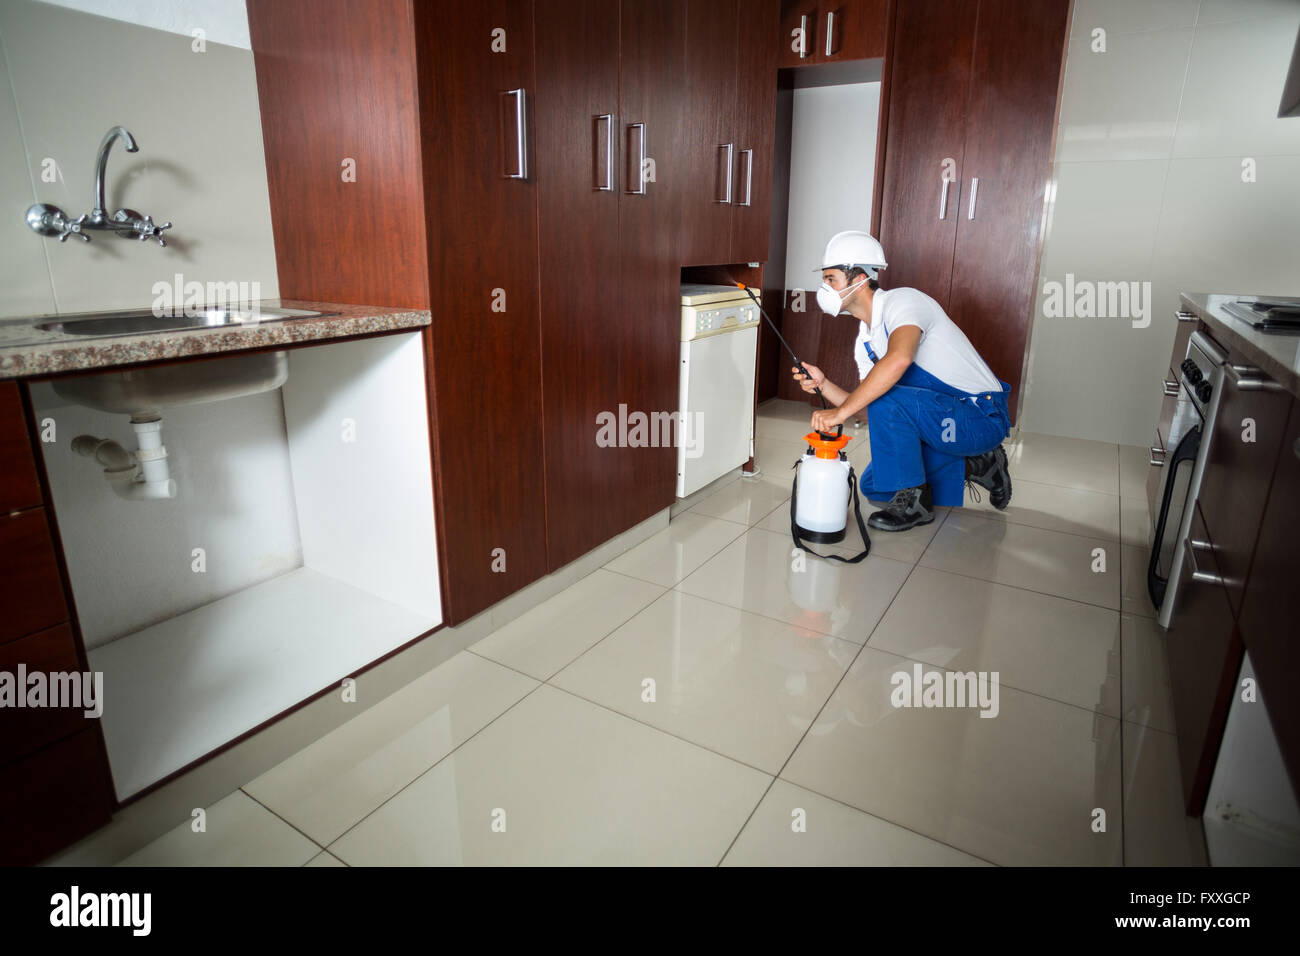 Manual worker using pest spray in cabinets - Stock Image